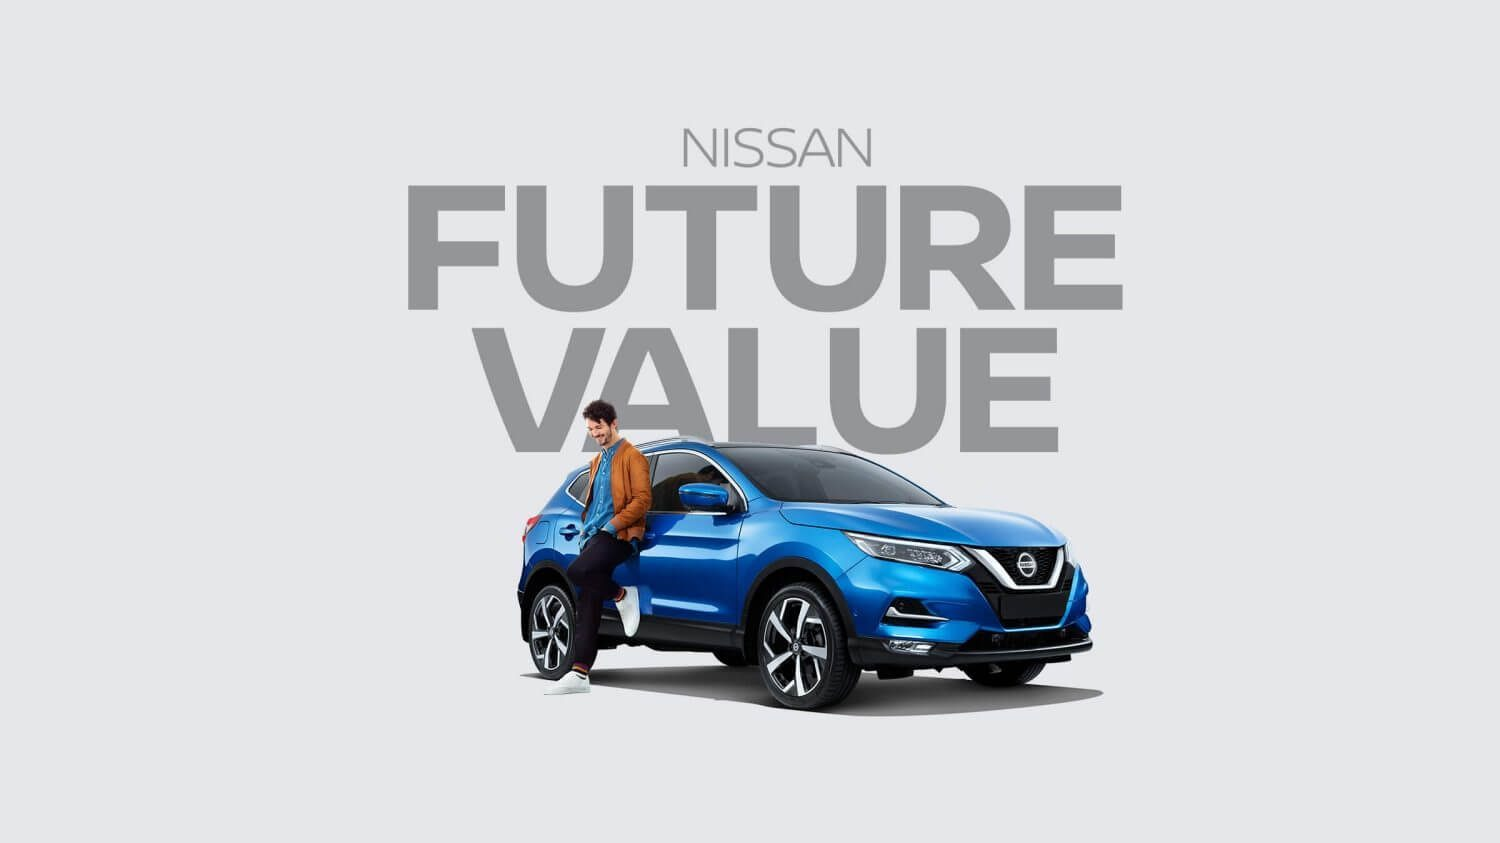 'Nissan Future Value'